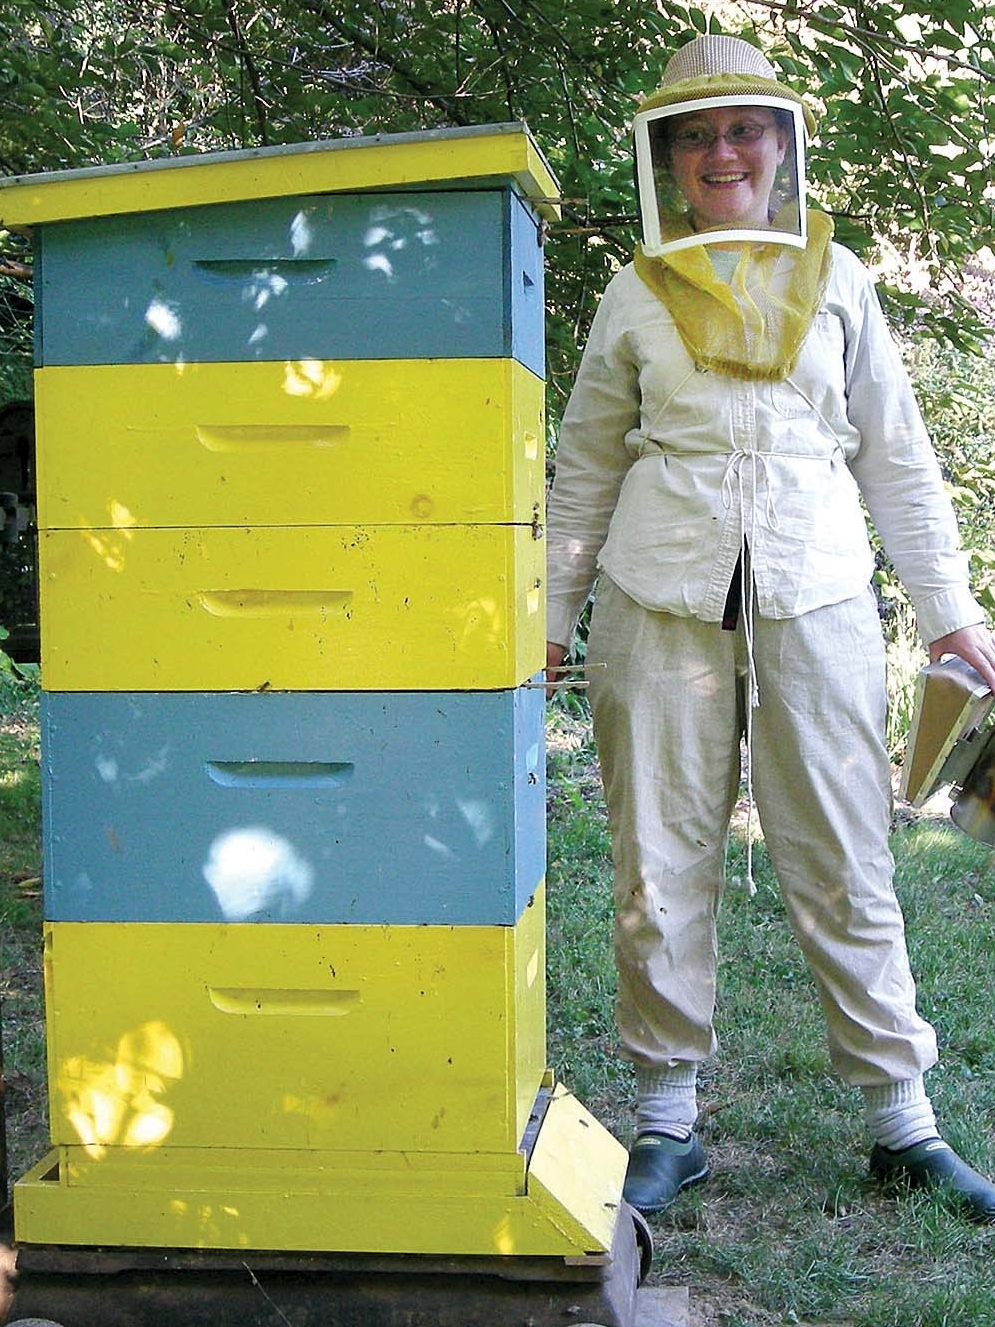 Bees are critical to the pollination of many crops, and humans can have a positive or negative impact on that process, said Dr. Claire Jantz. She and her husband have maintained beehives since 2005.